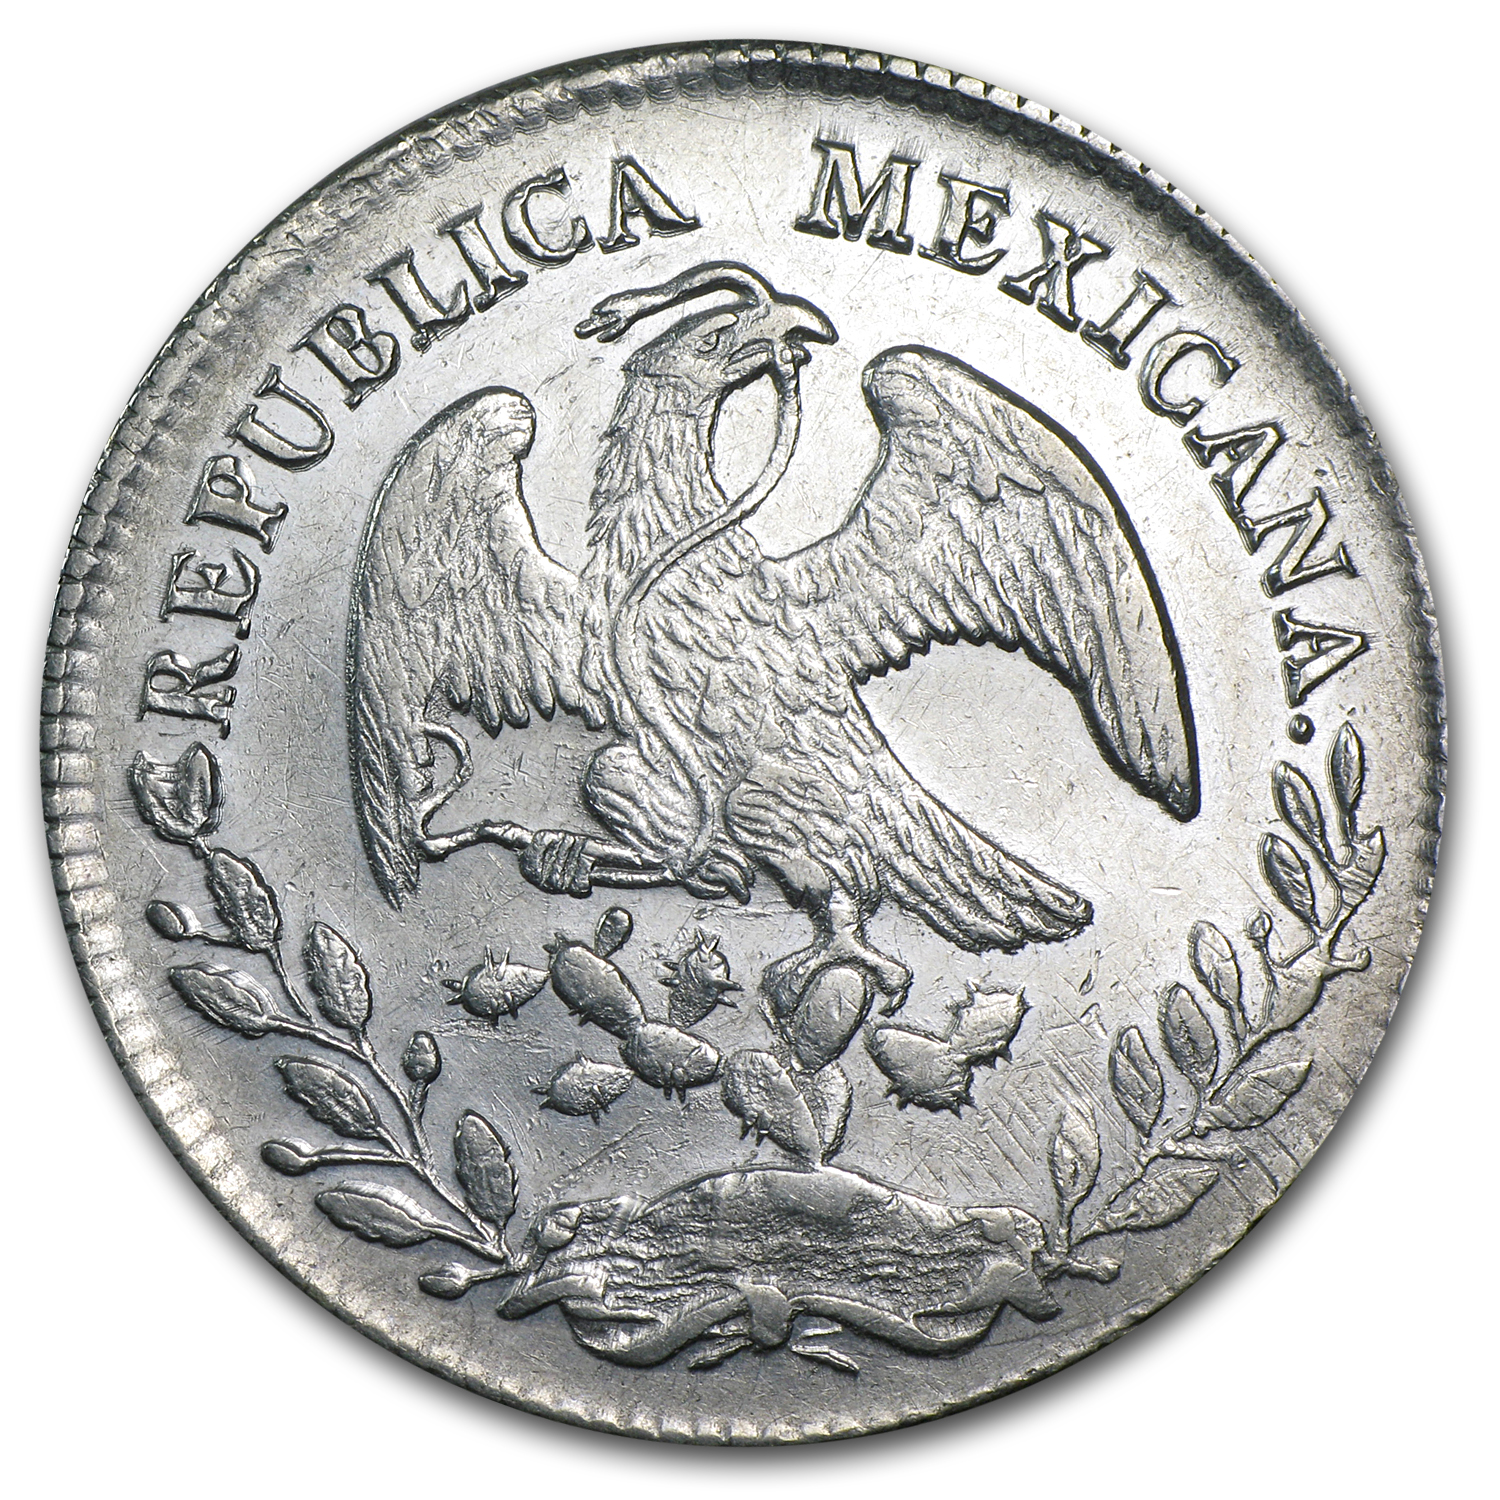 Mexico 1878 Do TB 8 Reales Silver AU